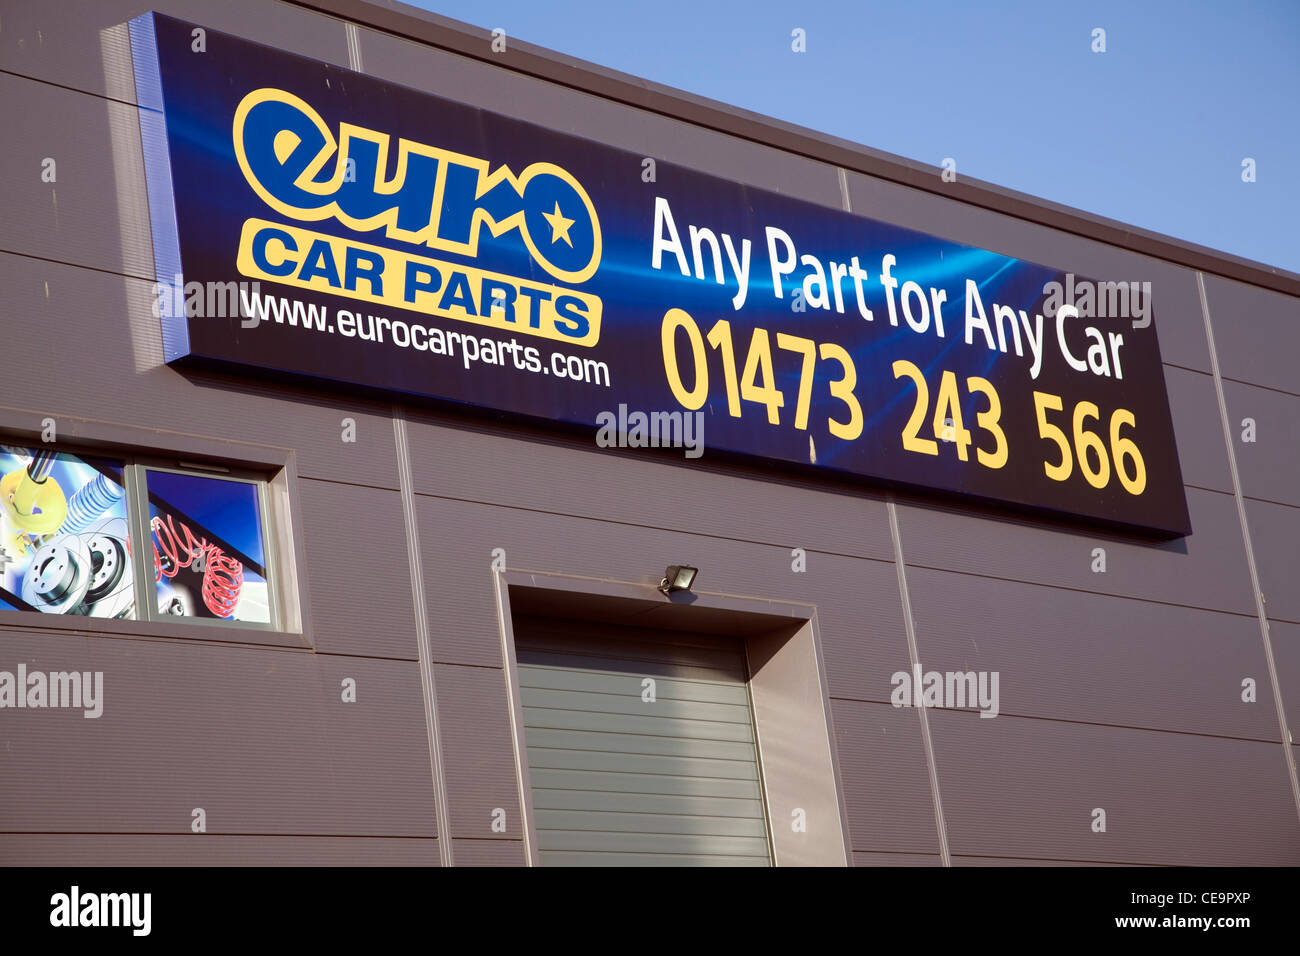 Euro Car Parts Depot Ipswich England Stock Photo 43241486 Alamy